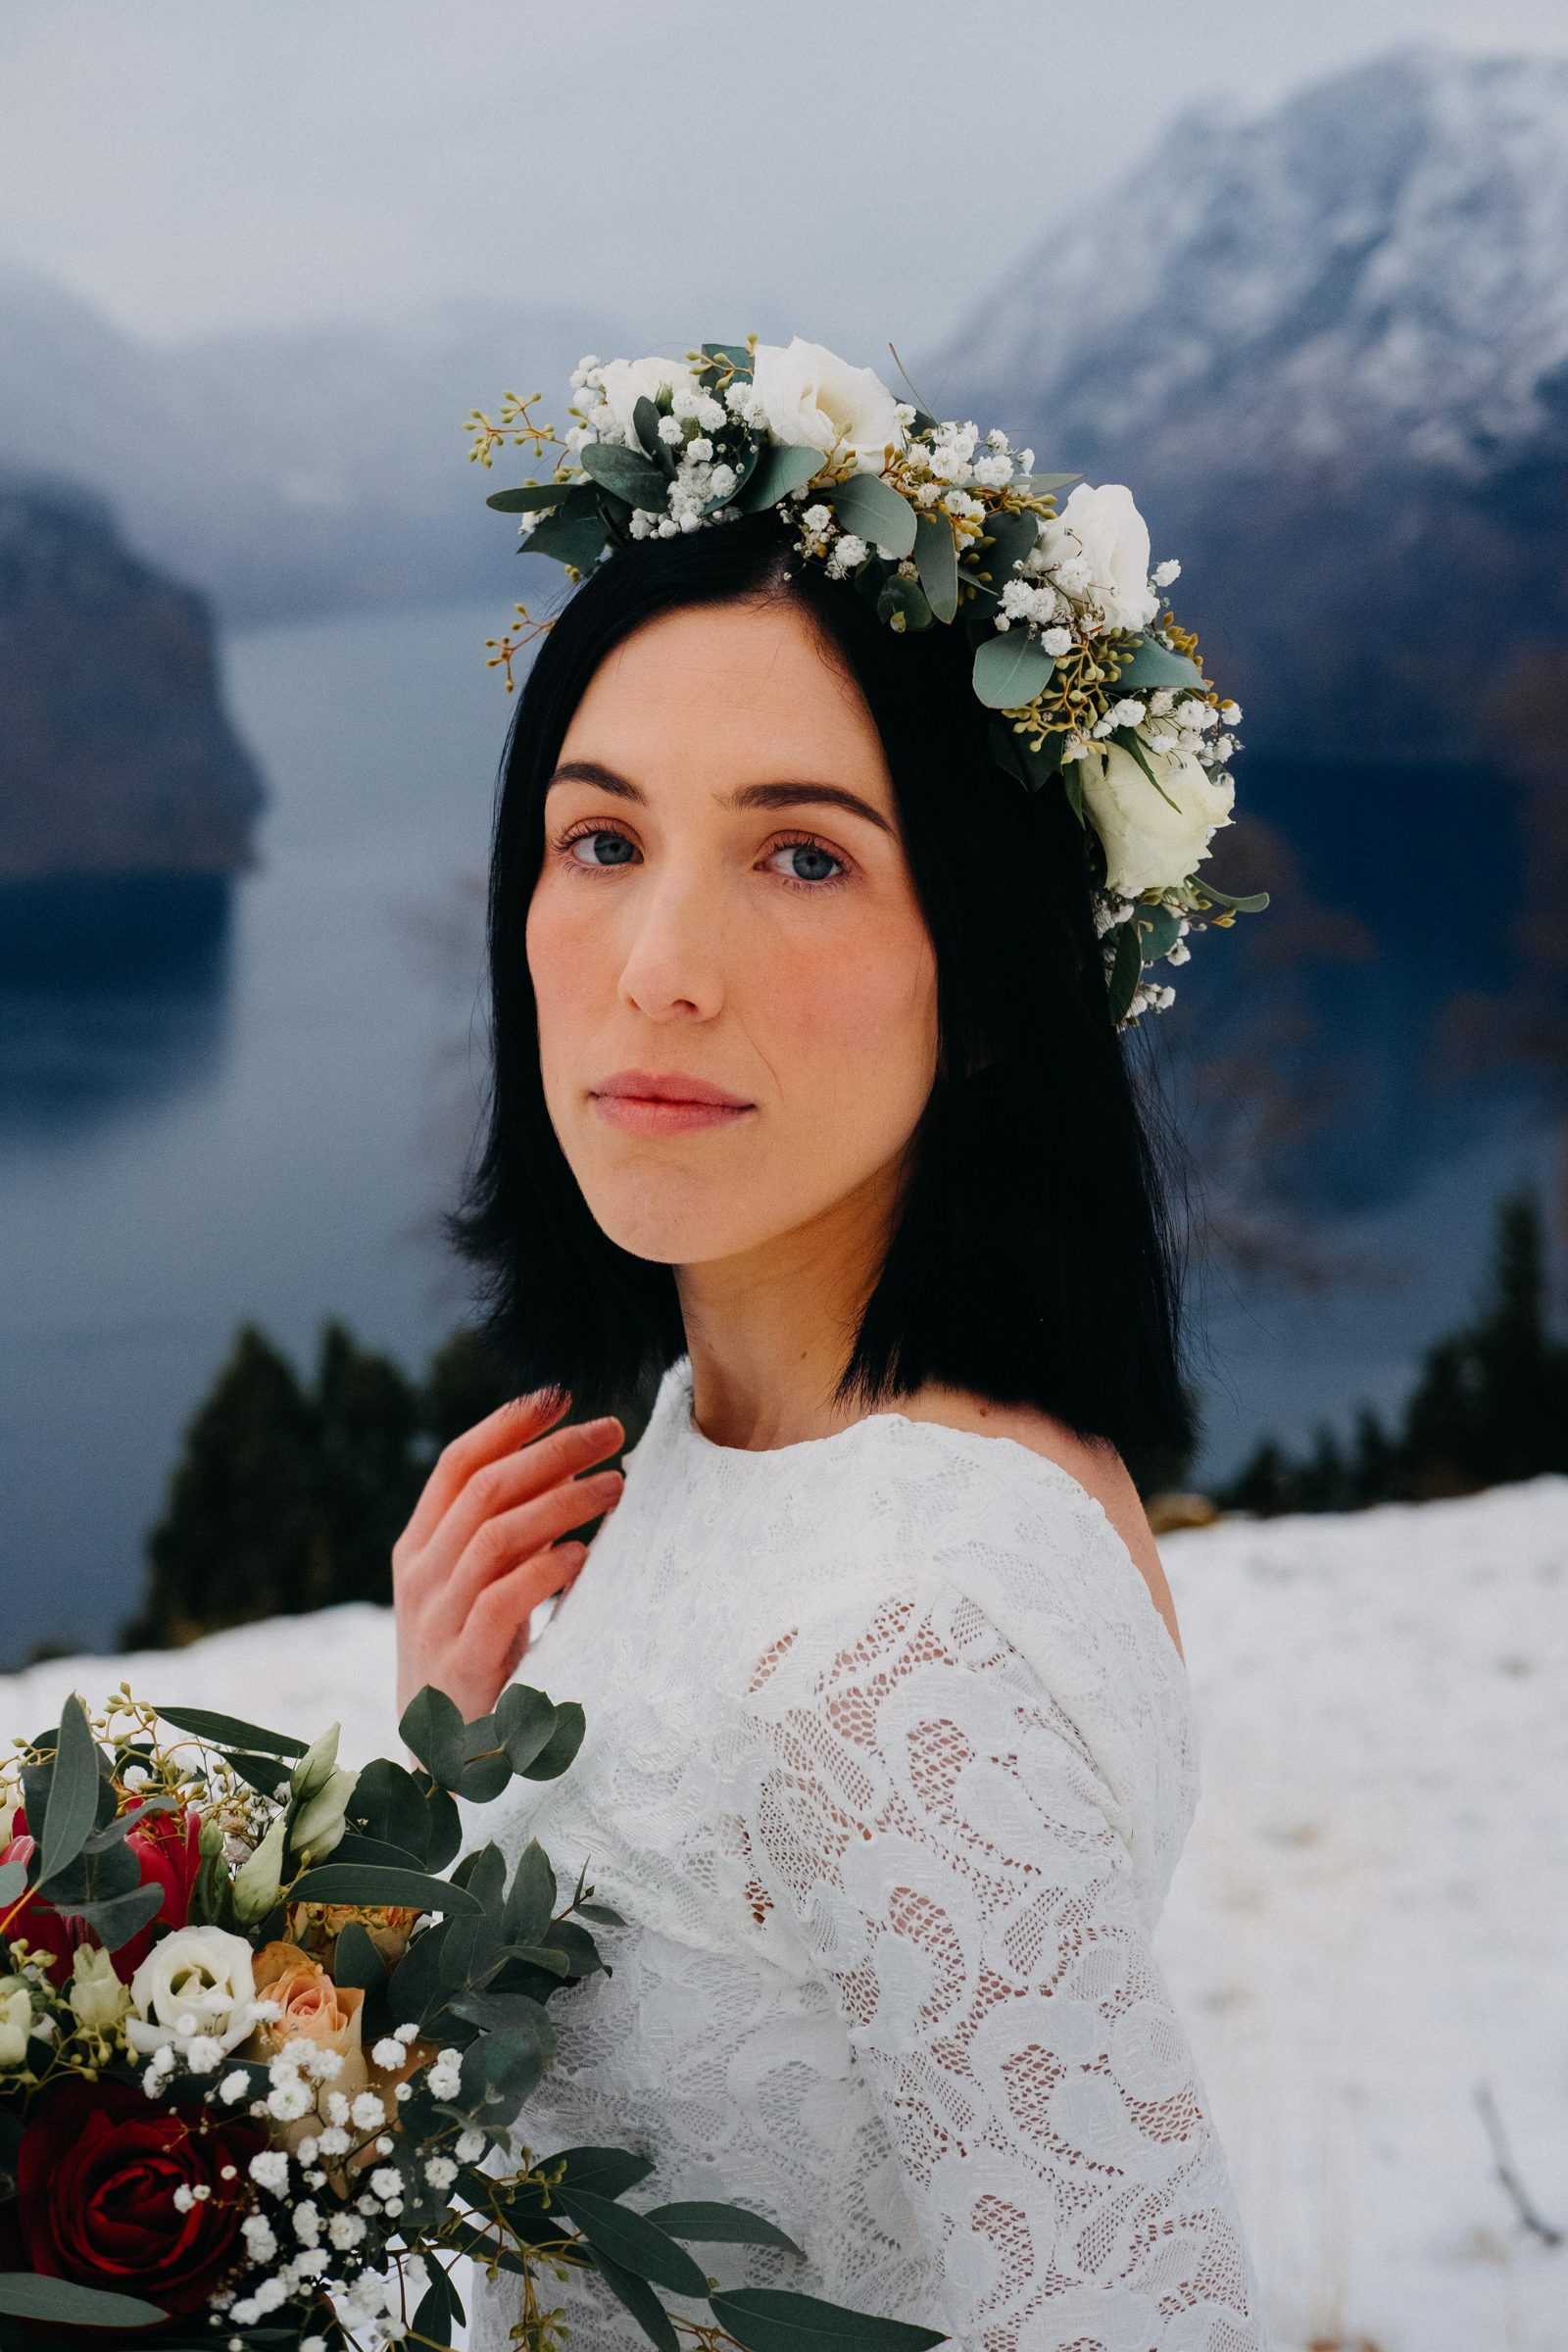 Bride portrait with floral crown and bouquet against snowy mountains and fjord - photo by Christin Eide Photography